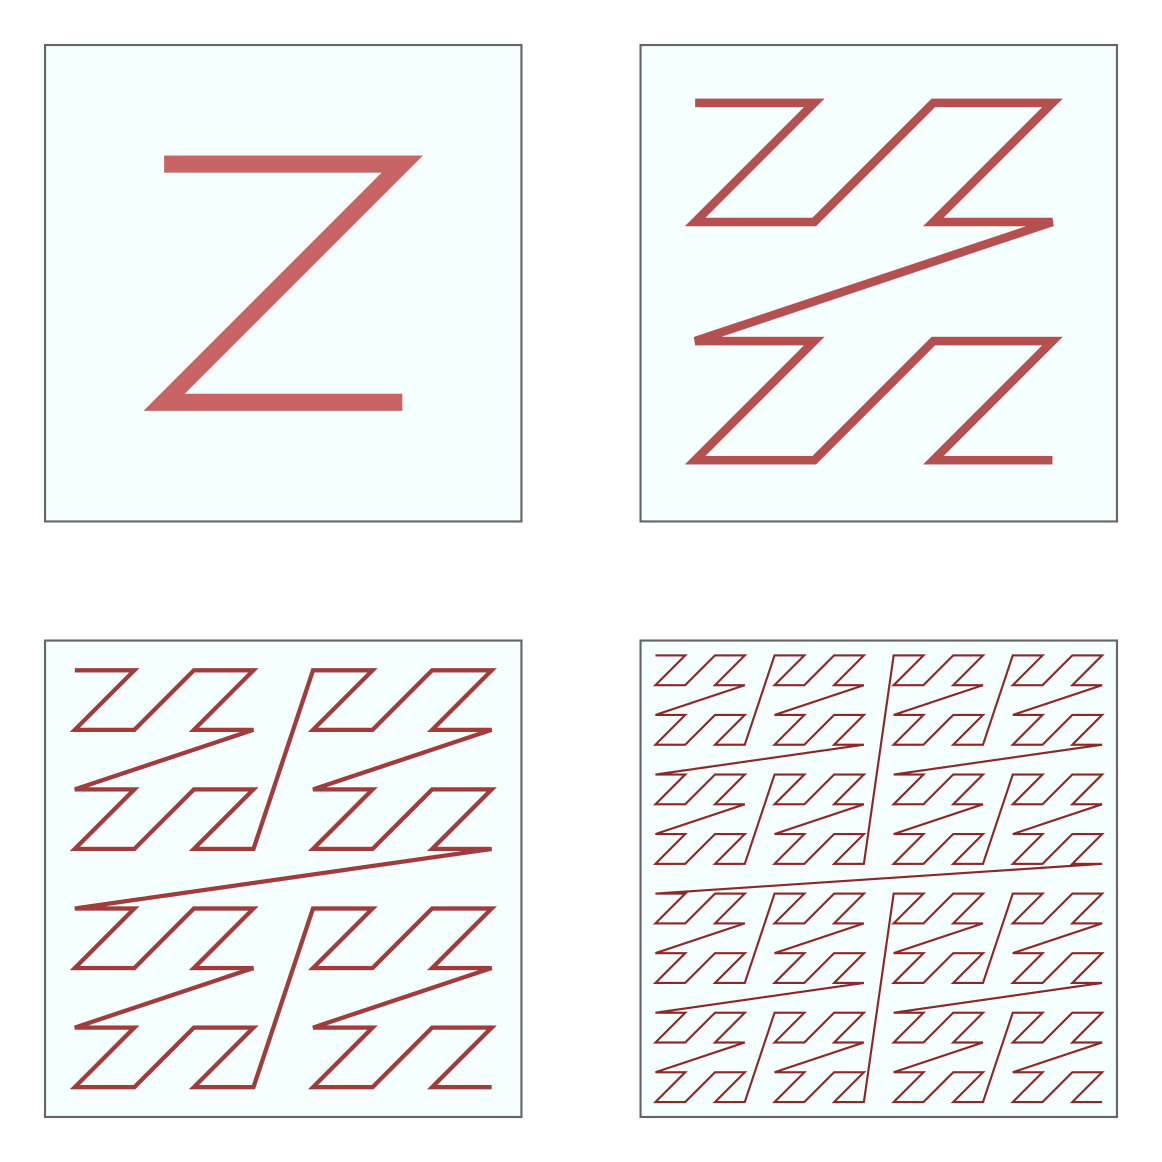 images/Four-level_Z.png